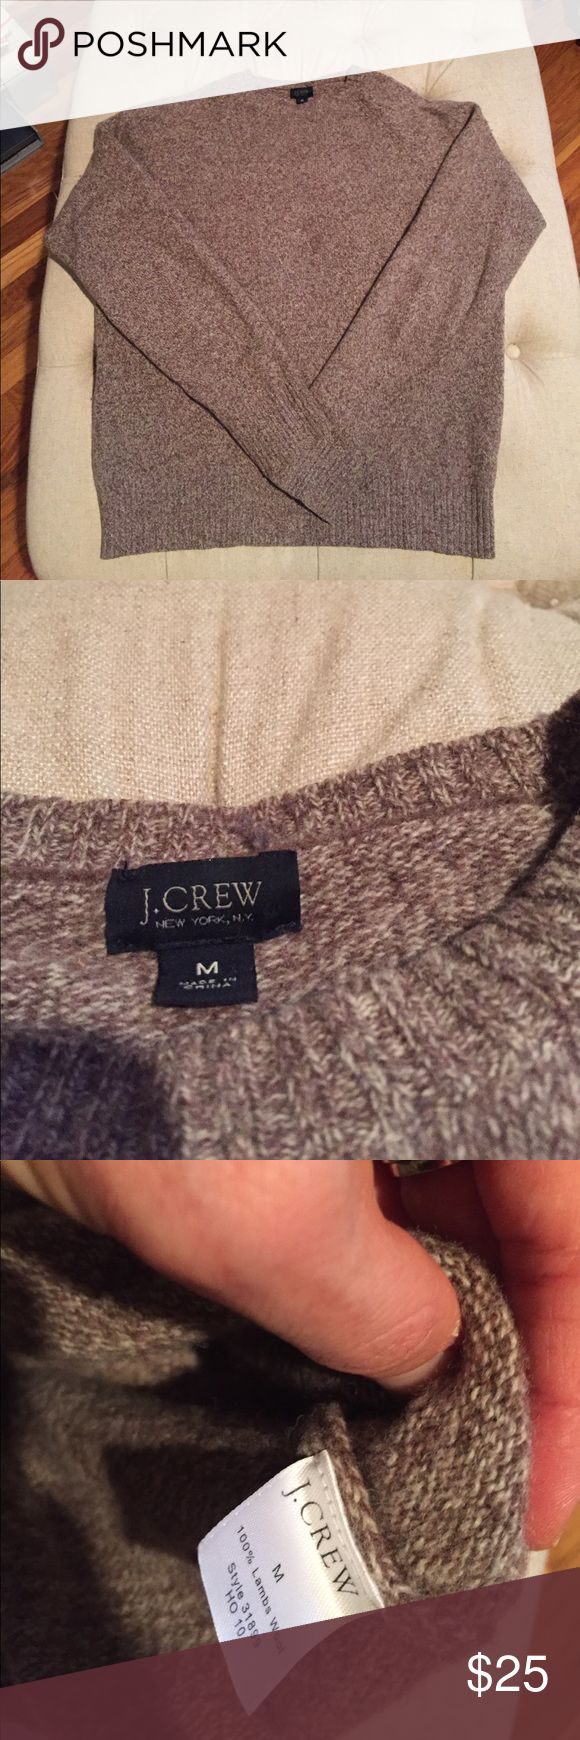 Men's JCrew Lambswool Sweater Selling a men's JCrew Lambswool Sweater. Color is light beige/tan. EUC. Size medium. No stains or holes, smoke free home. J. Crew Sweaters Crewneck